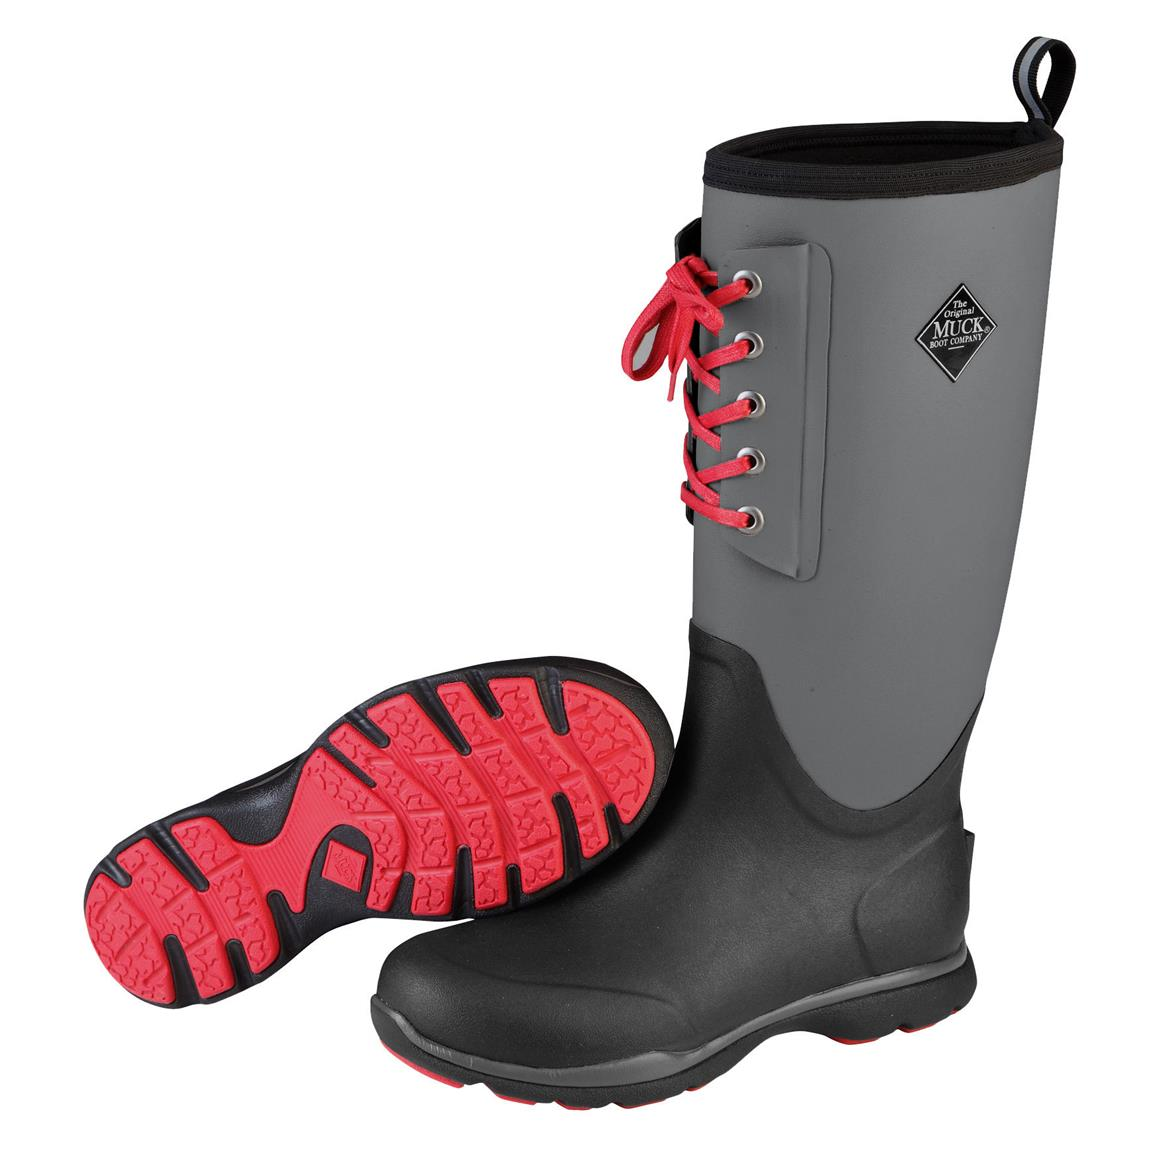 Muck Arctic Excursion Lace Tall Waterproof Insulated